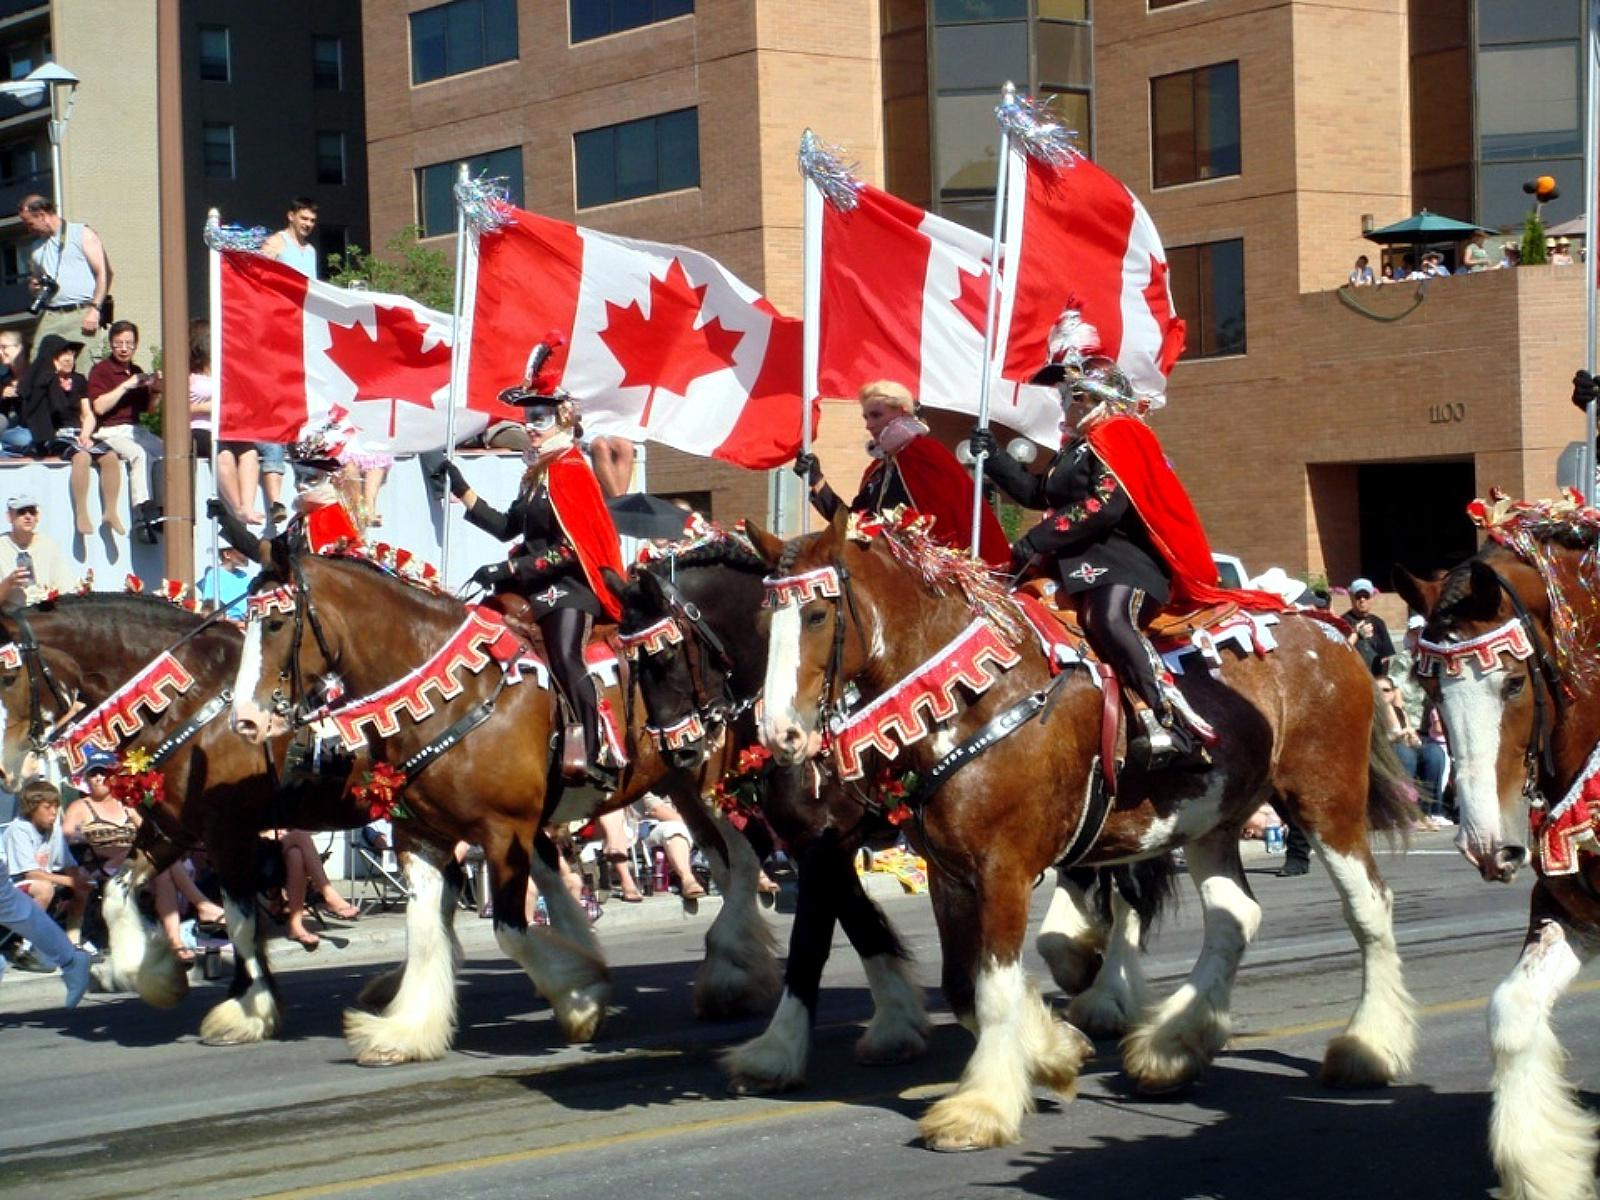 Calgary stampede parade HQ WALLPAPER   149933 1600x1200